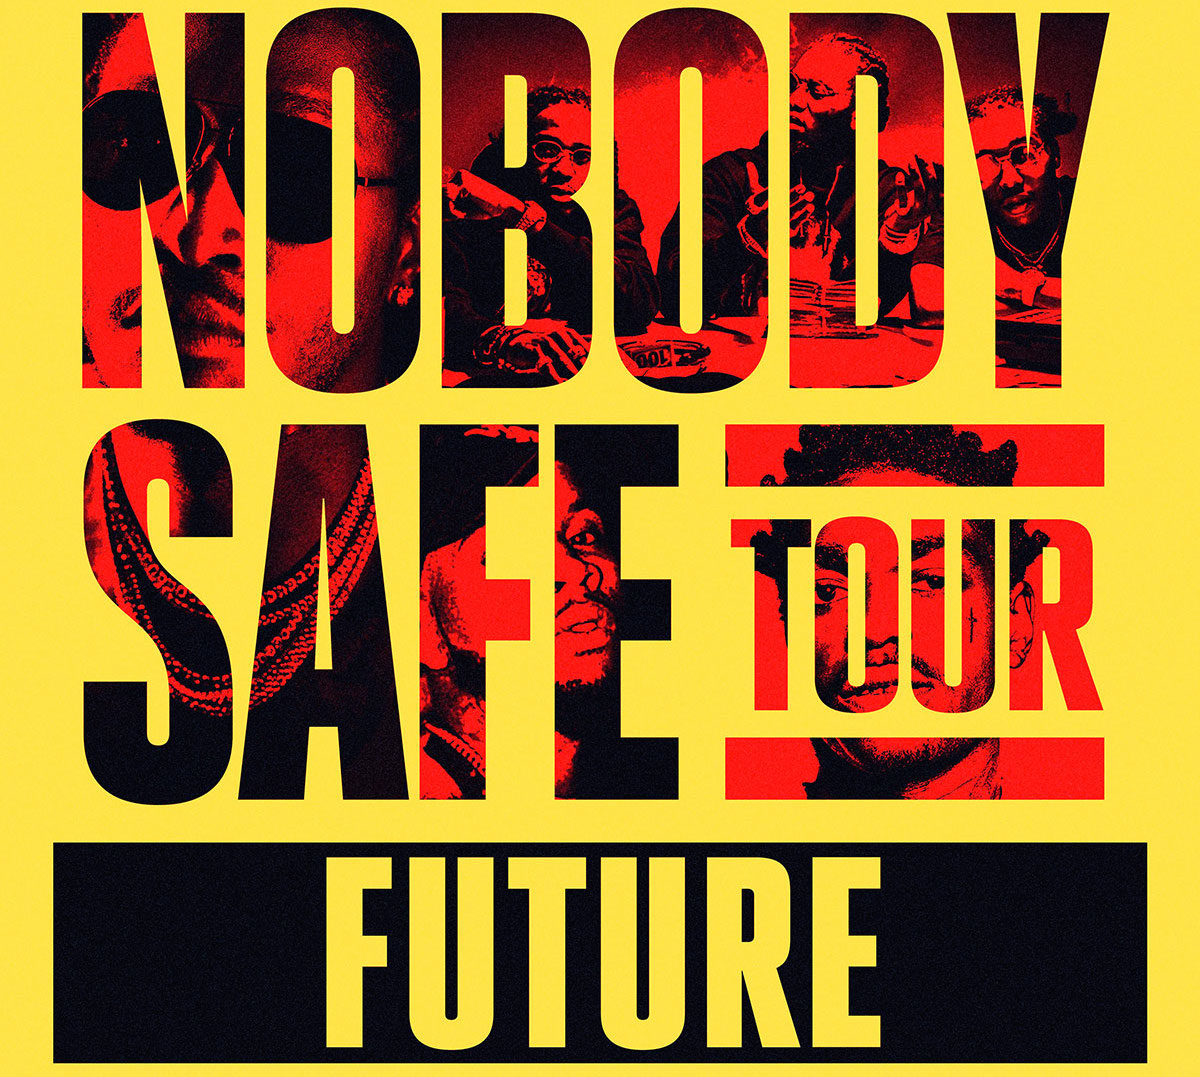 FUTURE And MIGOS Coming toCleveland!